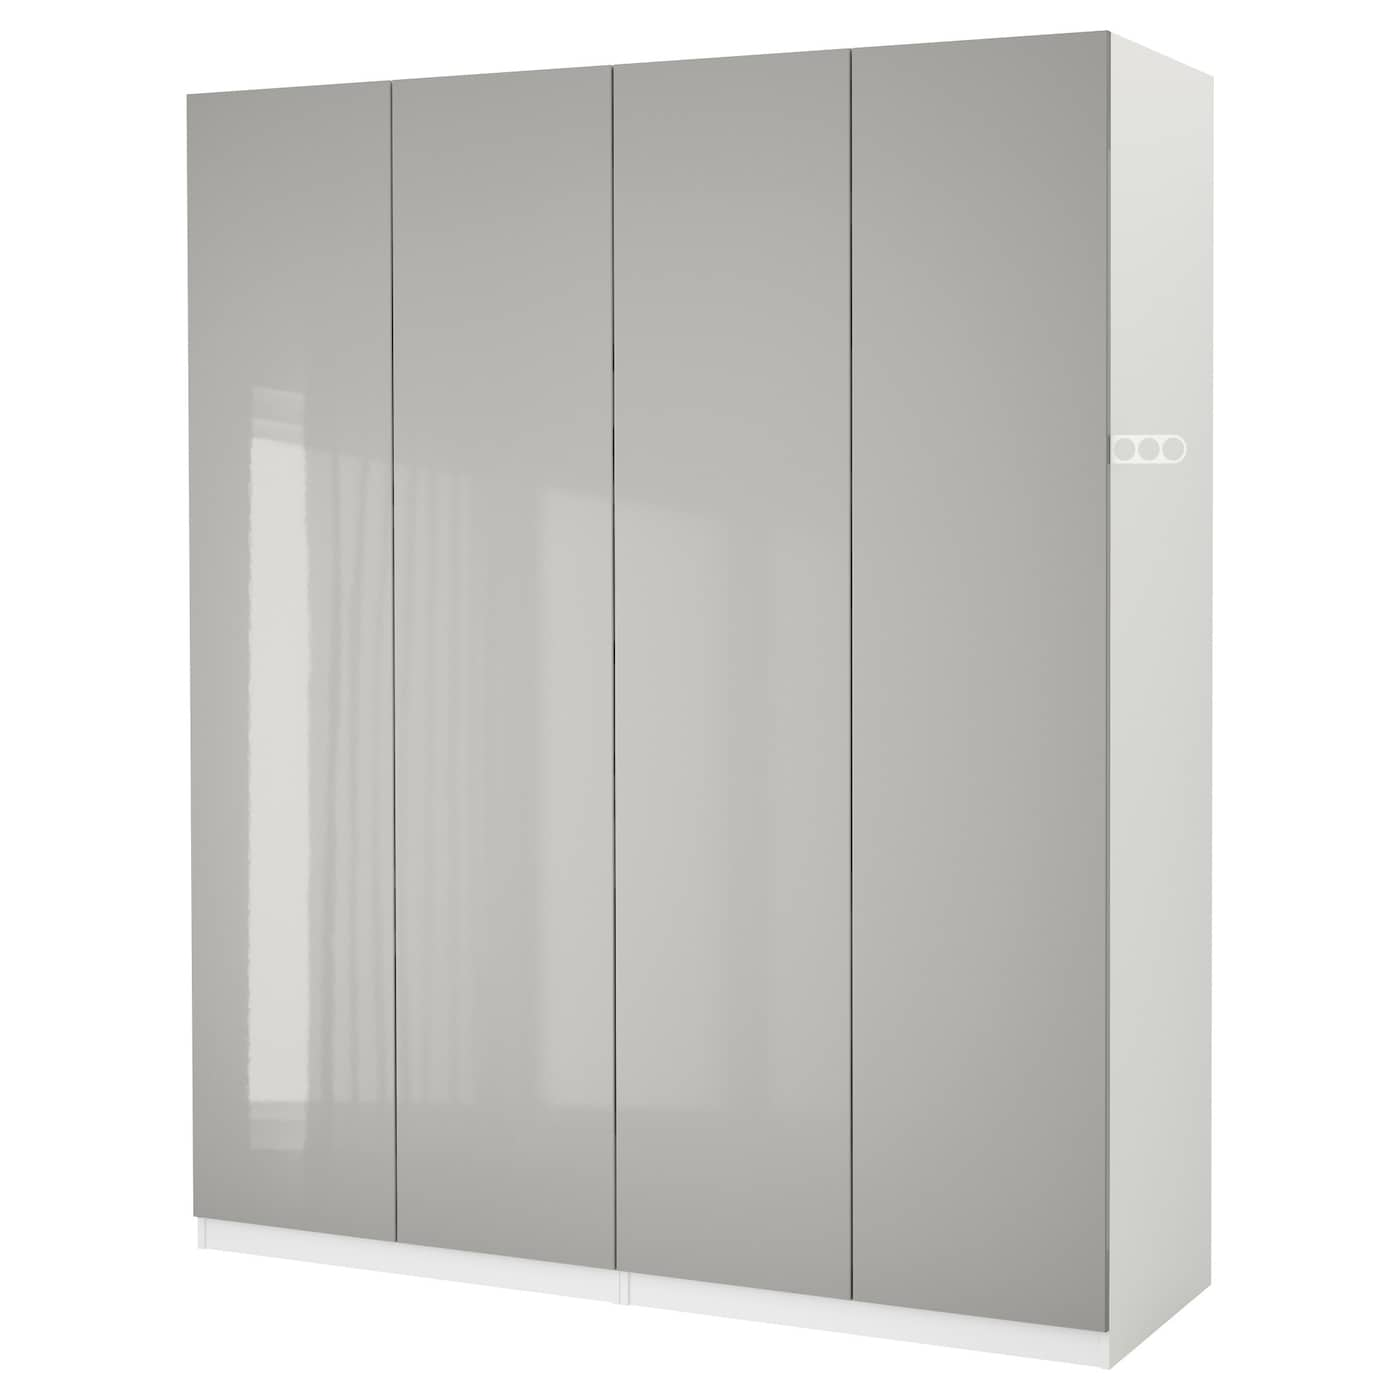 pax armoire penderie blanc fardal gris clair brillant 200 x 60 x 236 cm ikea. Black Bedroom Furniture Sets. Home Design Ideas